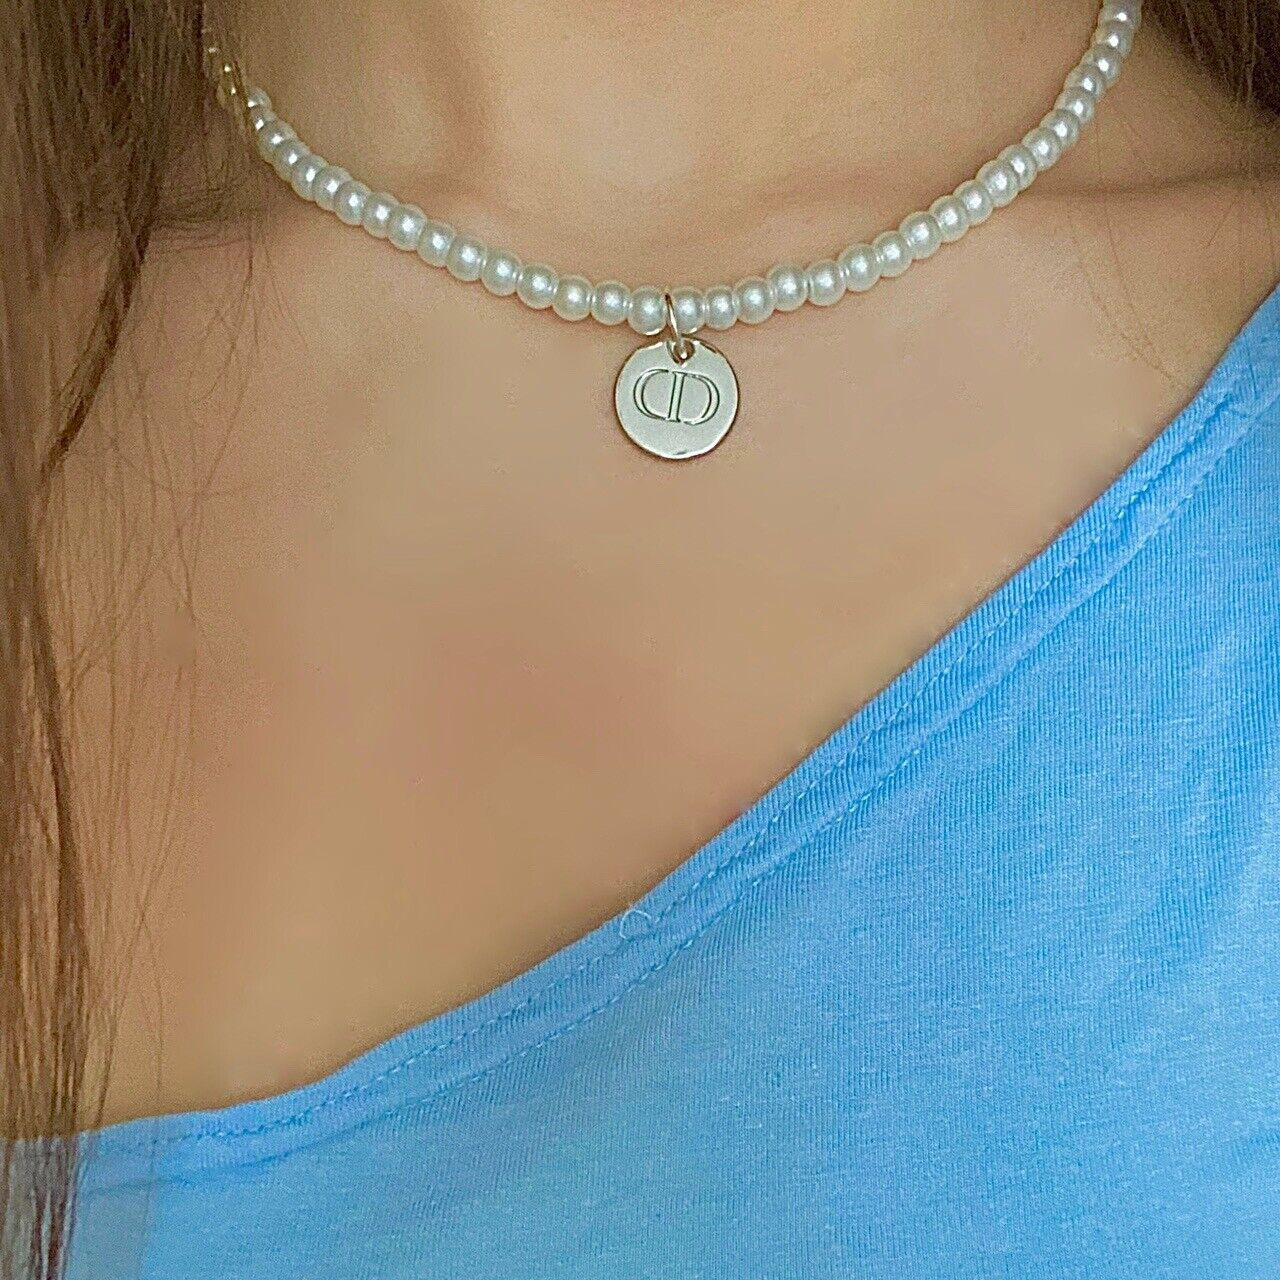 Genuine reworked Christian Dior 'CD' silver engraved charm pearl necklace